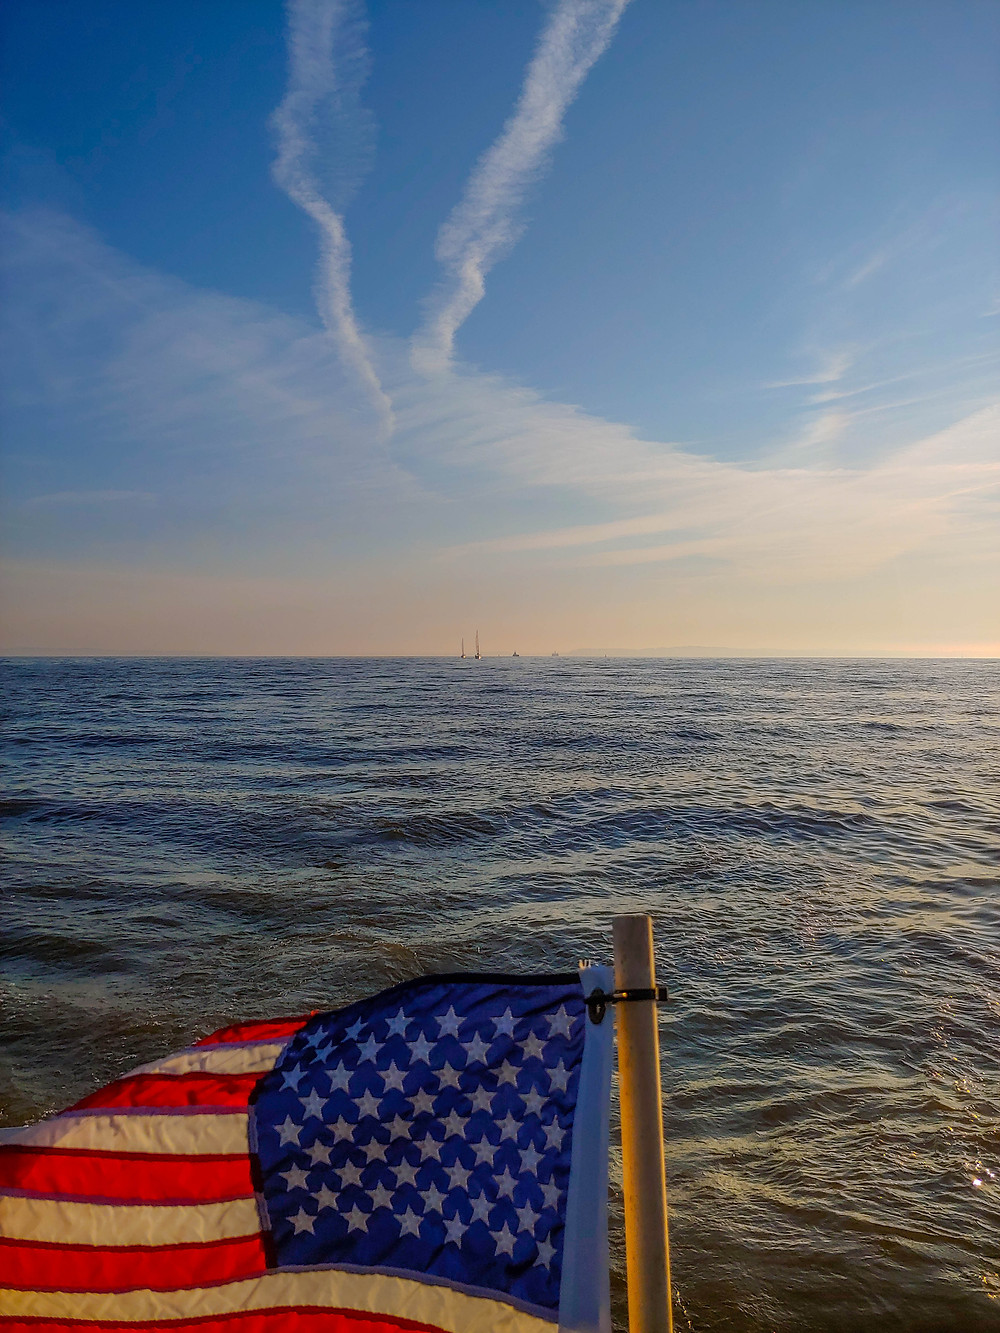 flag, american flag, water, calm, clouds, blue sky